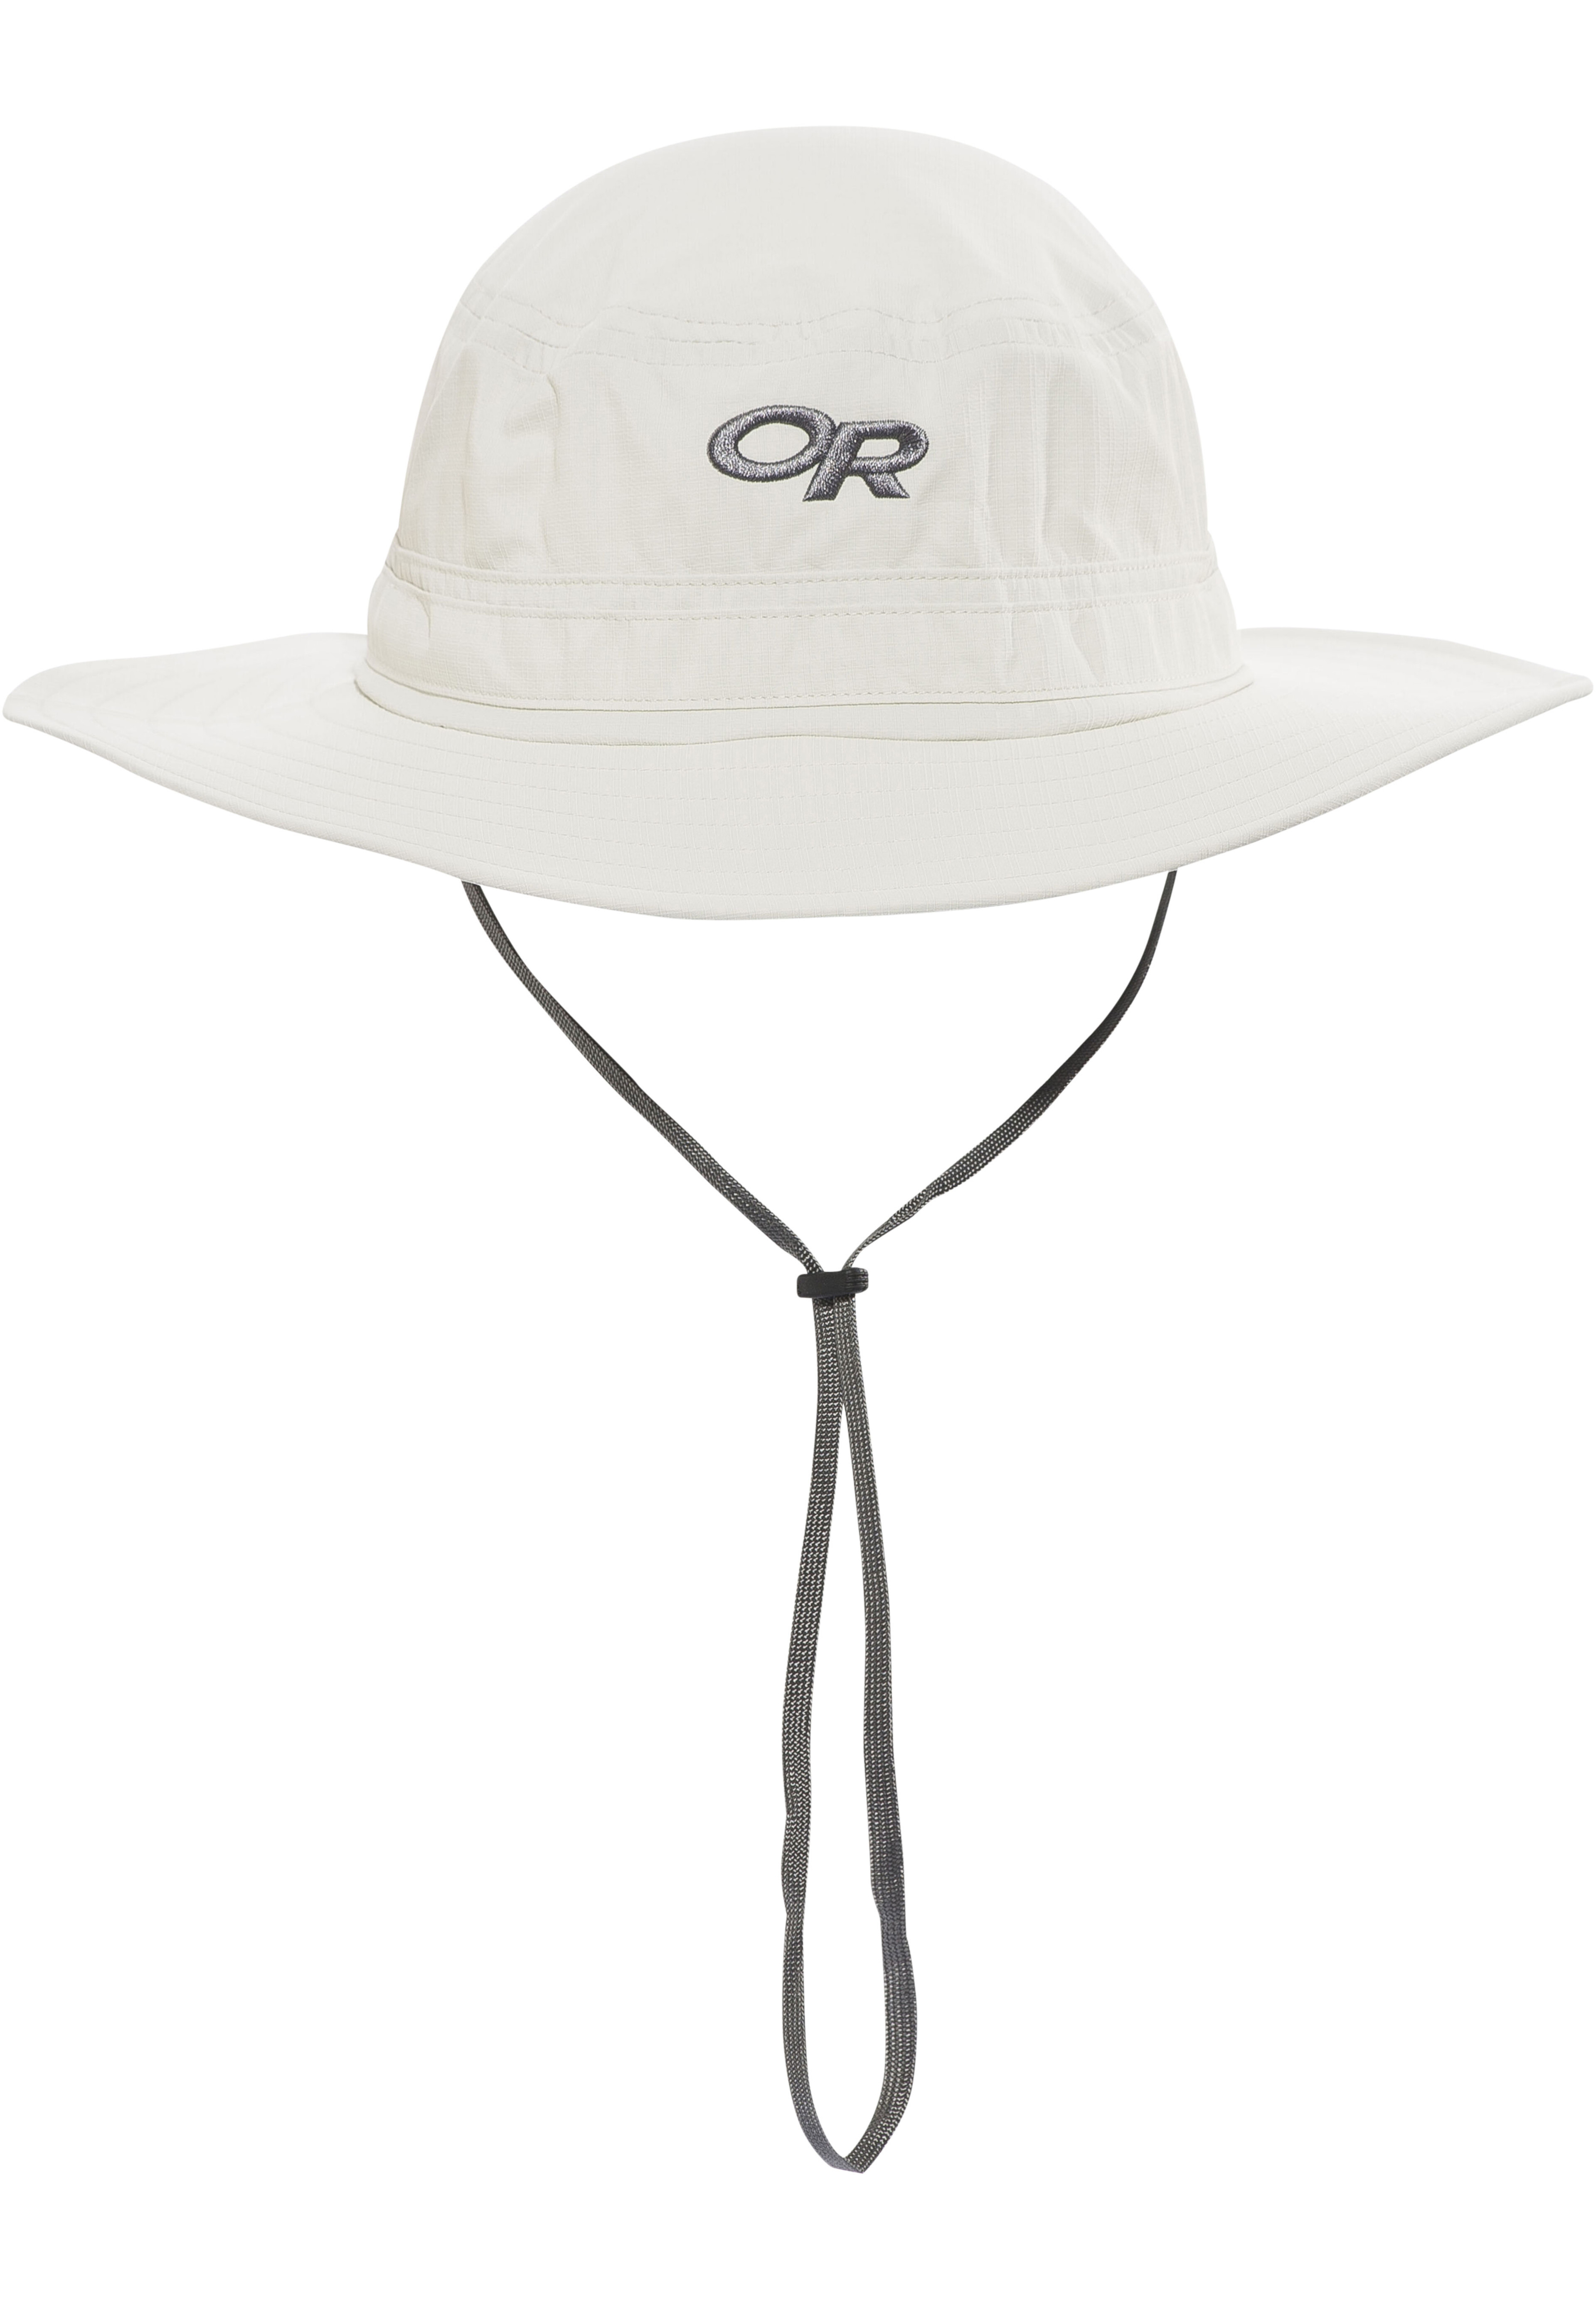 f77f3e19 Outdoor Research Helios Sun Hat sand | campz.ch